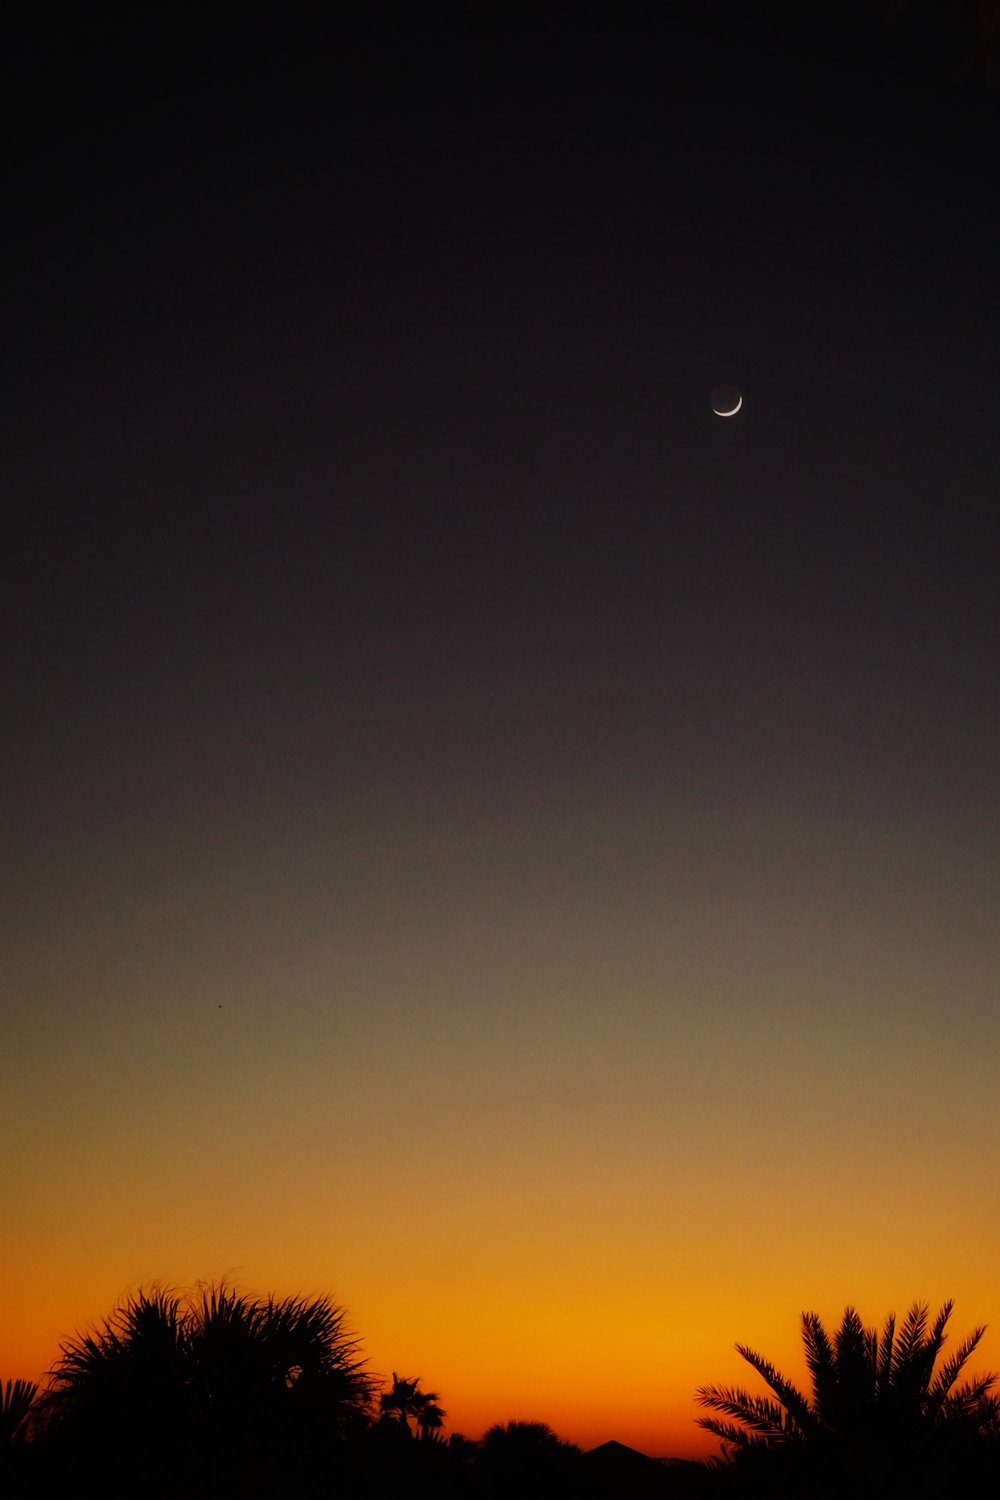 Sunset / Moonrise